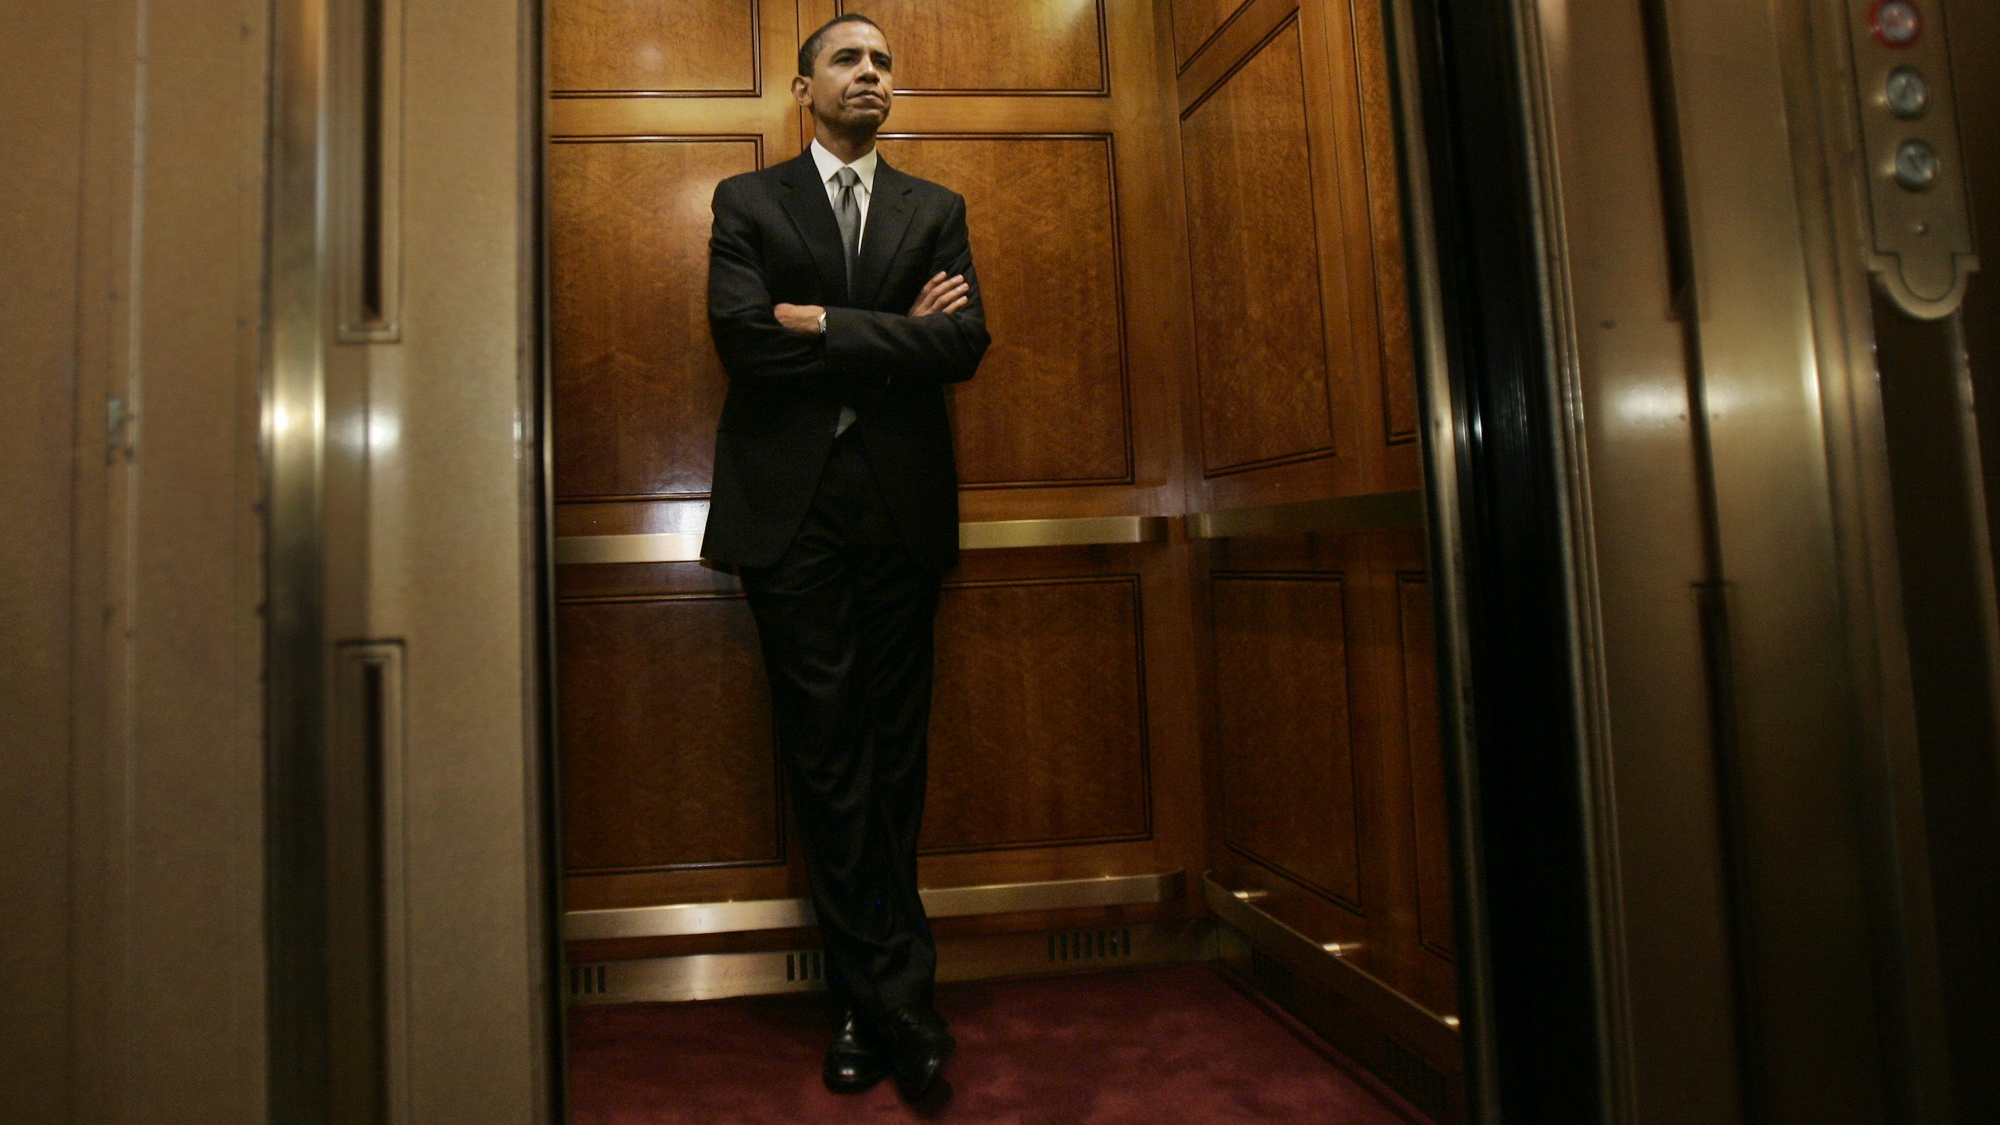 Sen. Barack Obama, D- Ill., stands in an elevator on Capitol Hill after casting his vote on the nomination of Samuel Alito, Jr., for Supreme Court Justice, Tuesday, Jan. 31, 2006. Alito was confirmed as the nation's 110th Supreme Court justice Tuesday with the most partisan victory in modern history after a fierce battle over the future direction of the high court. The Senate voted 58-42 to confirm Alito. (AP Photo/Susan Walsh)